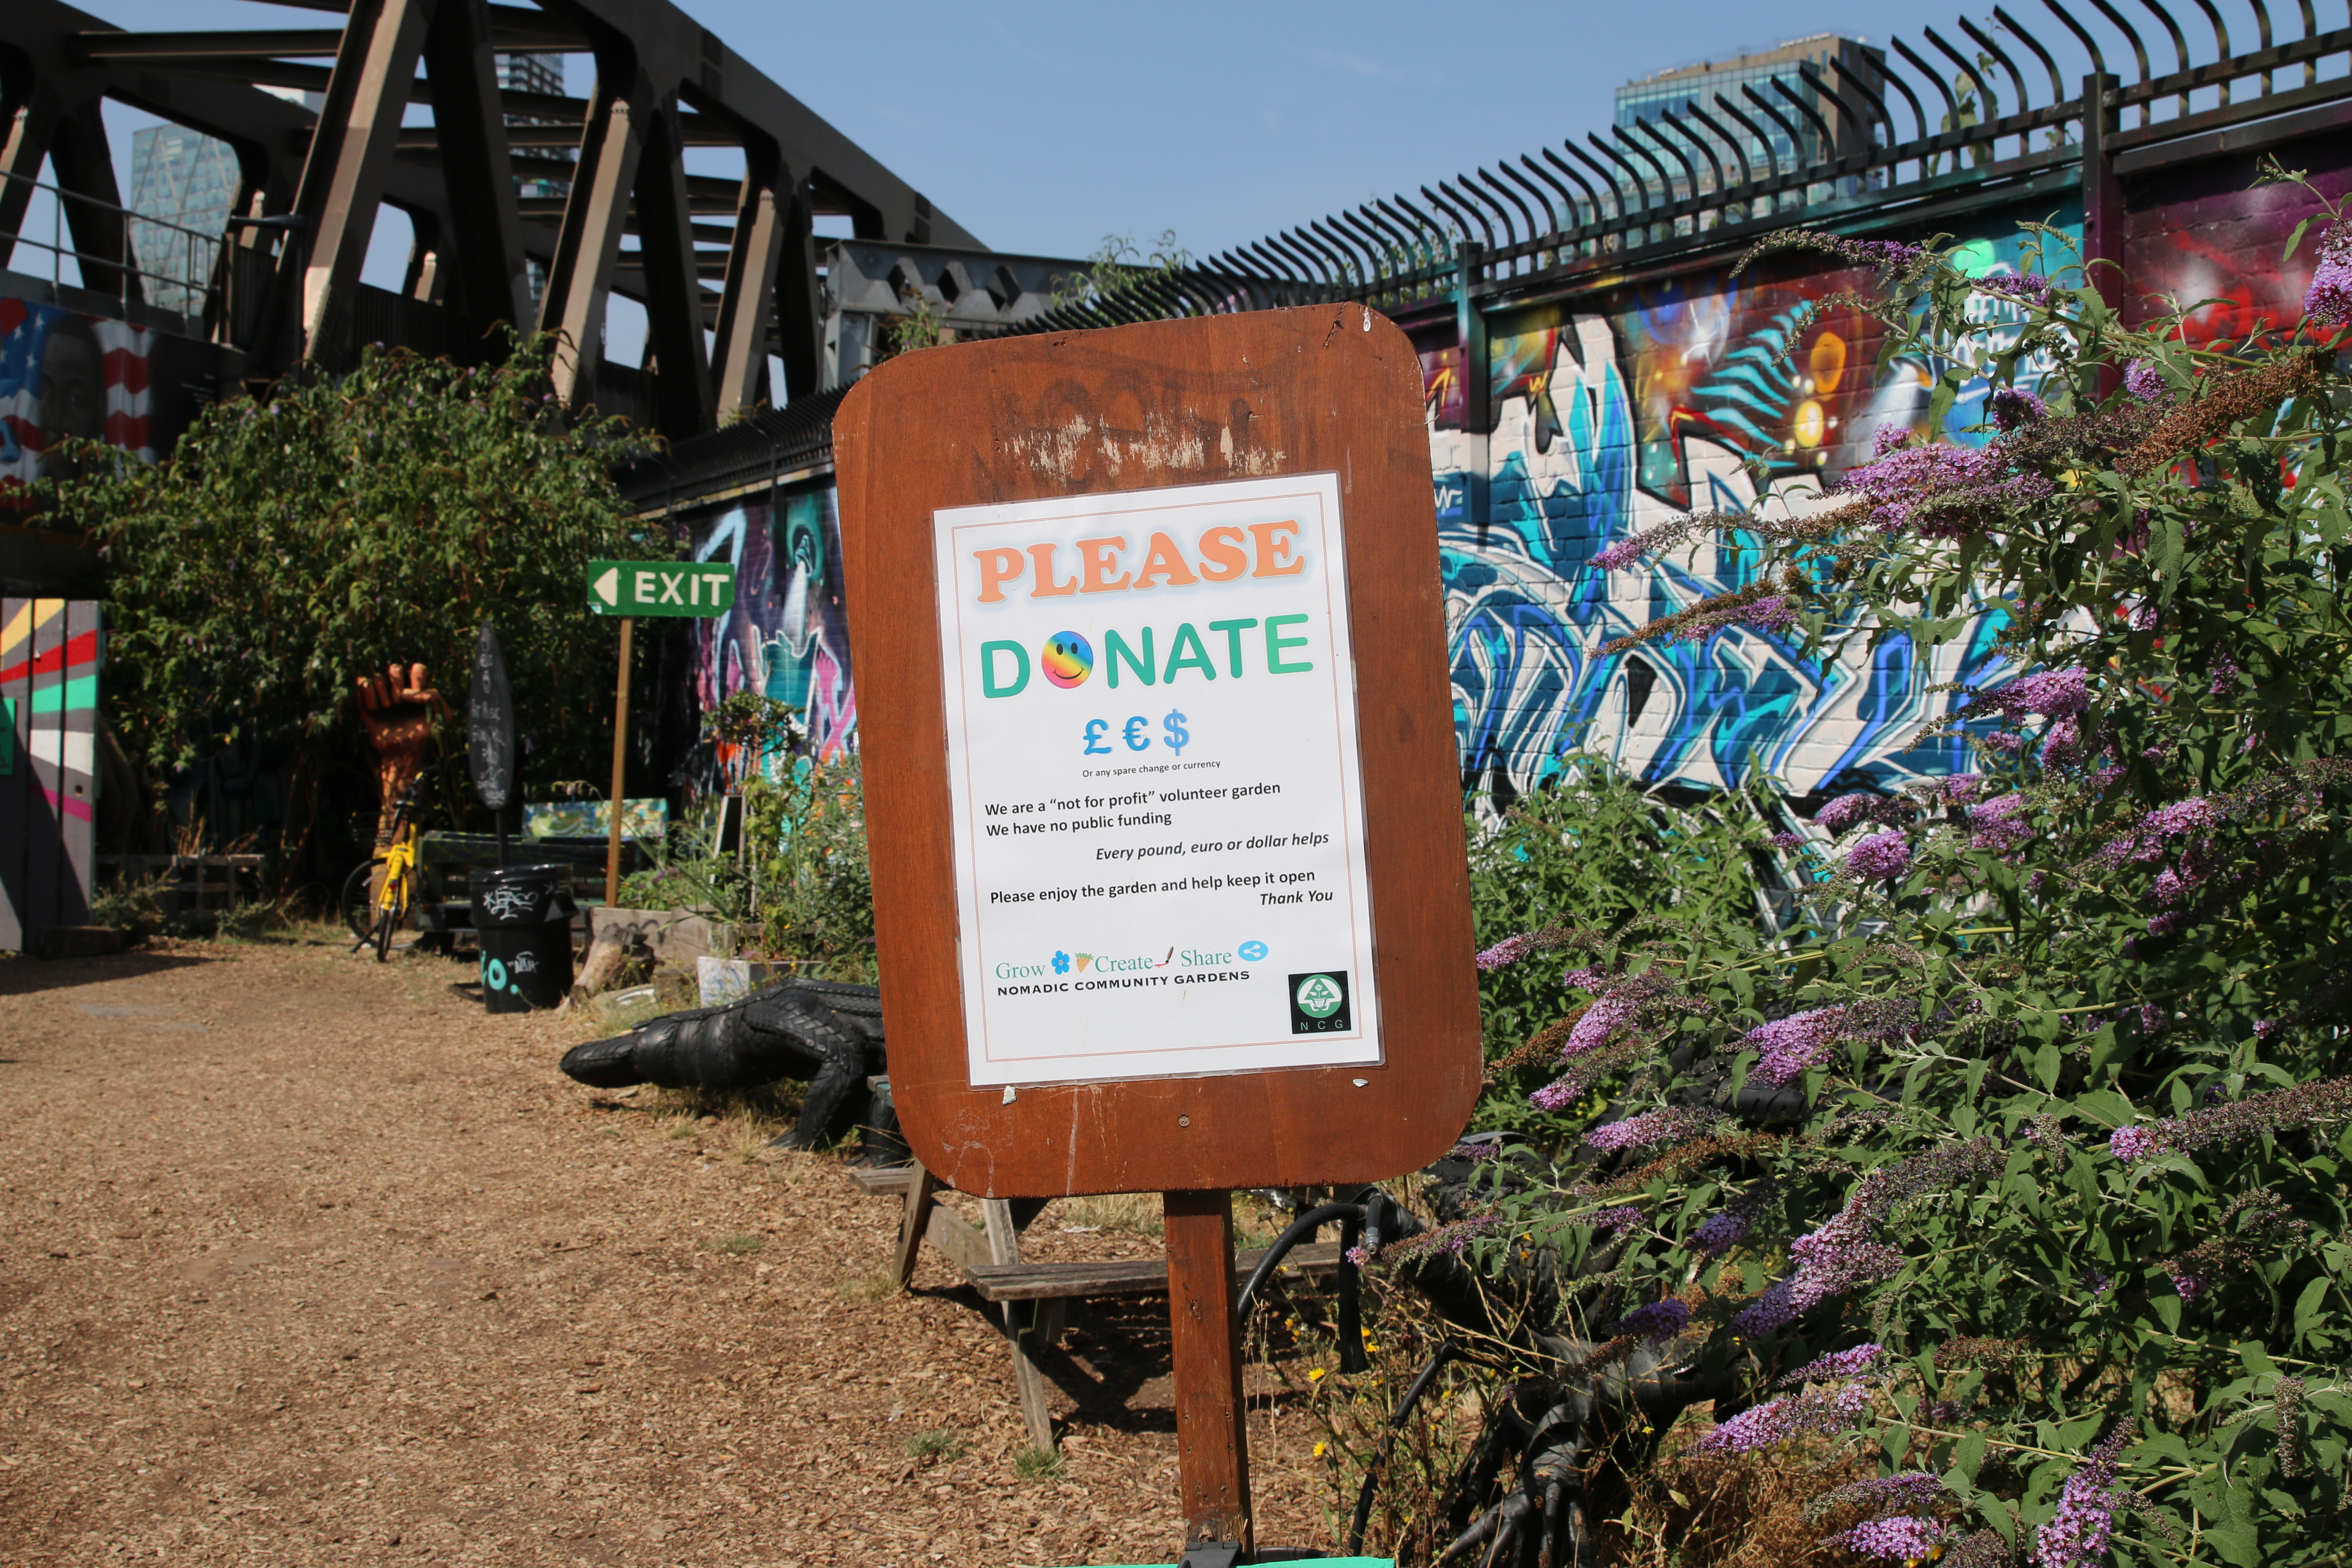 How a Derelict Space in London Became a Community Garden and Cafe - VICE